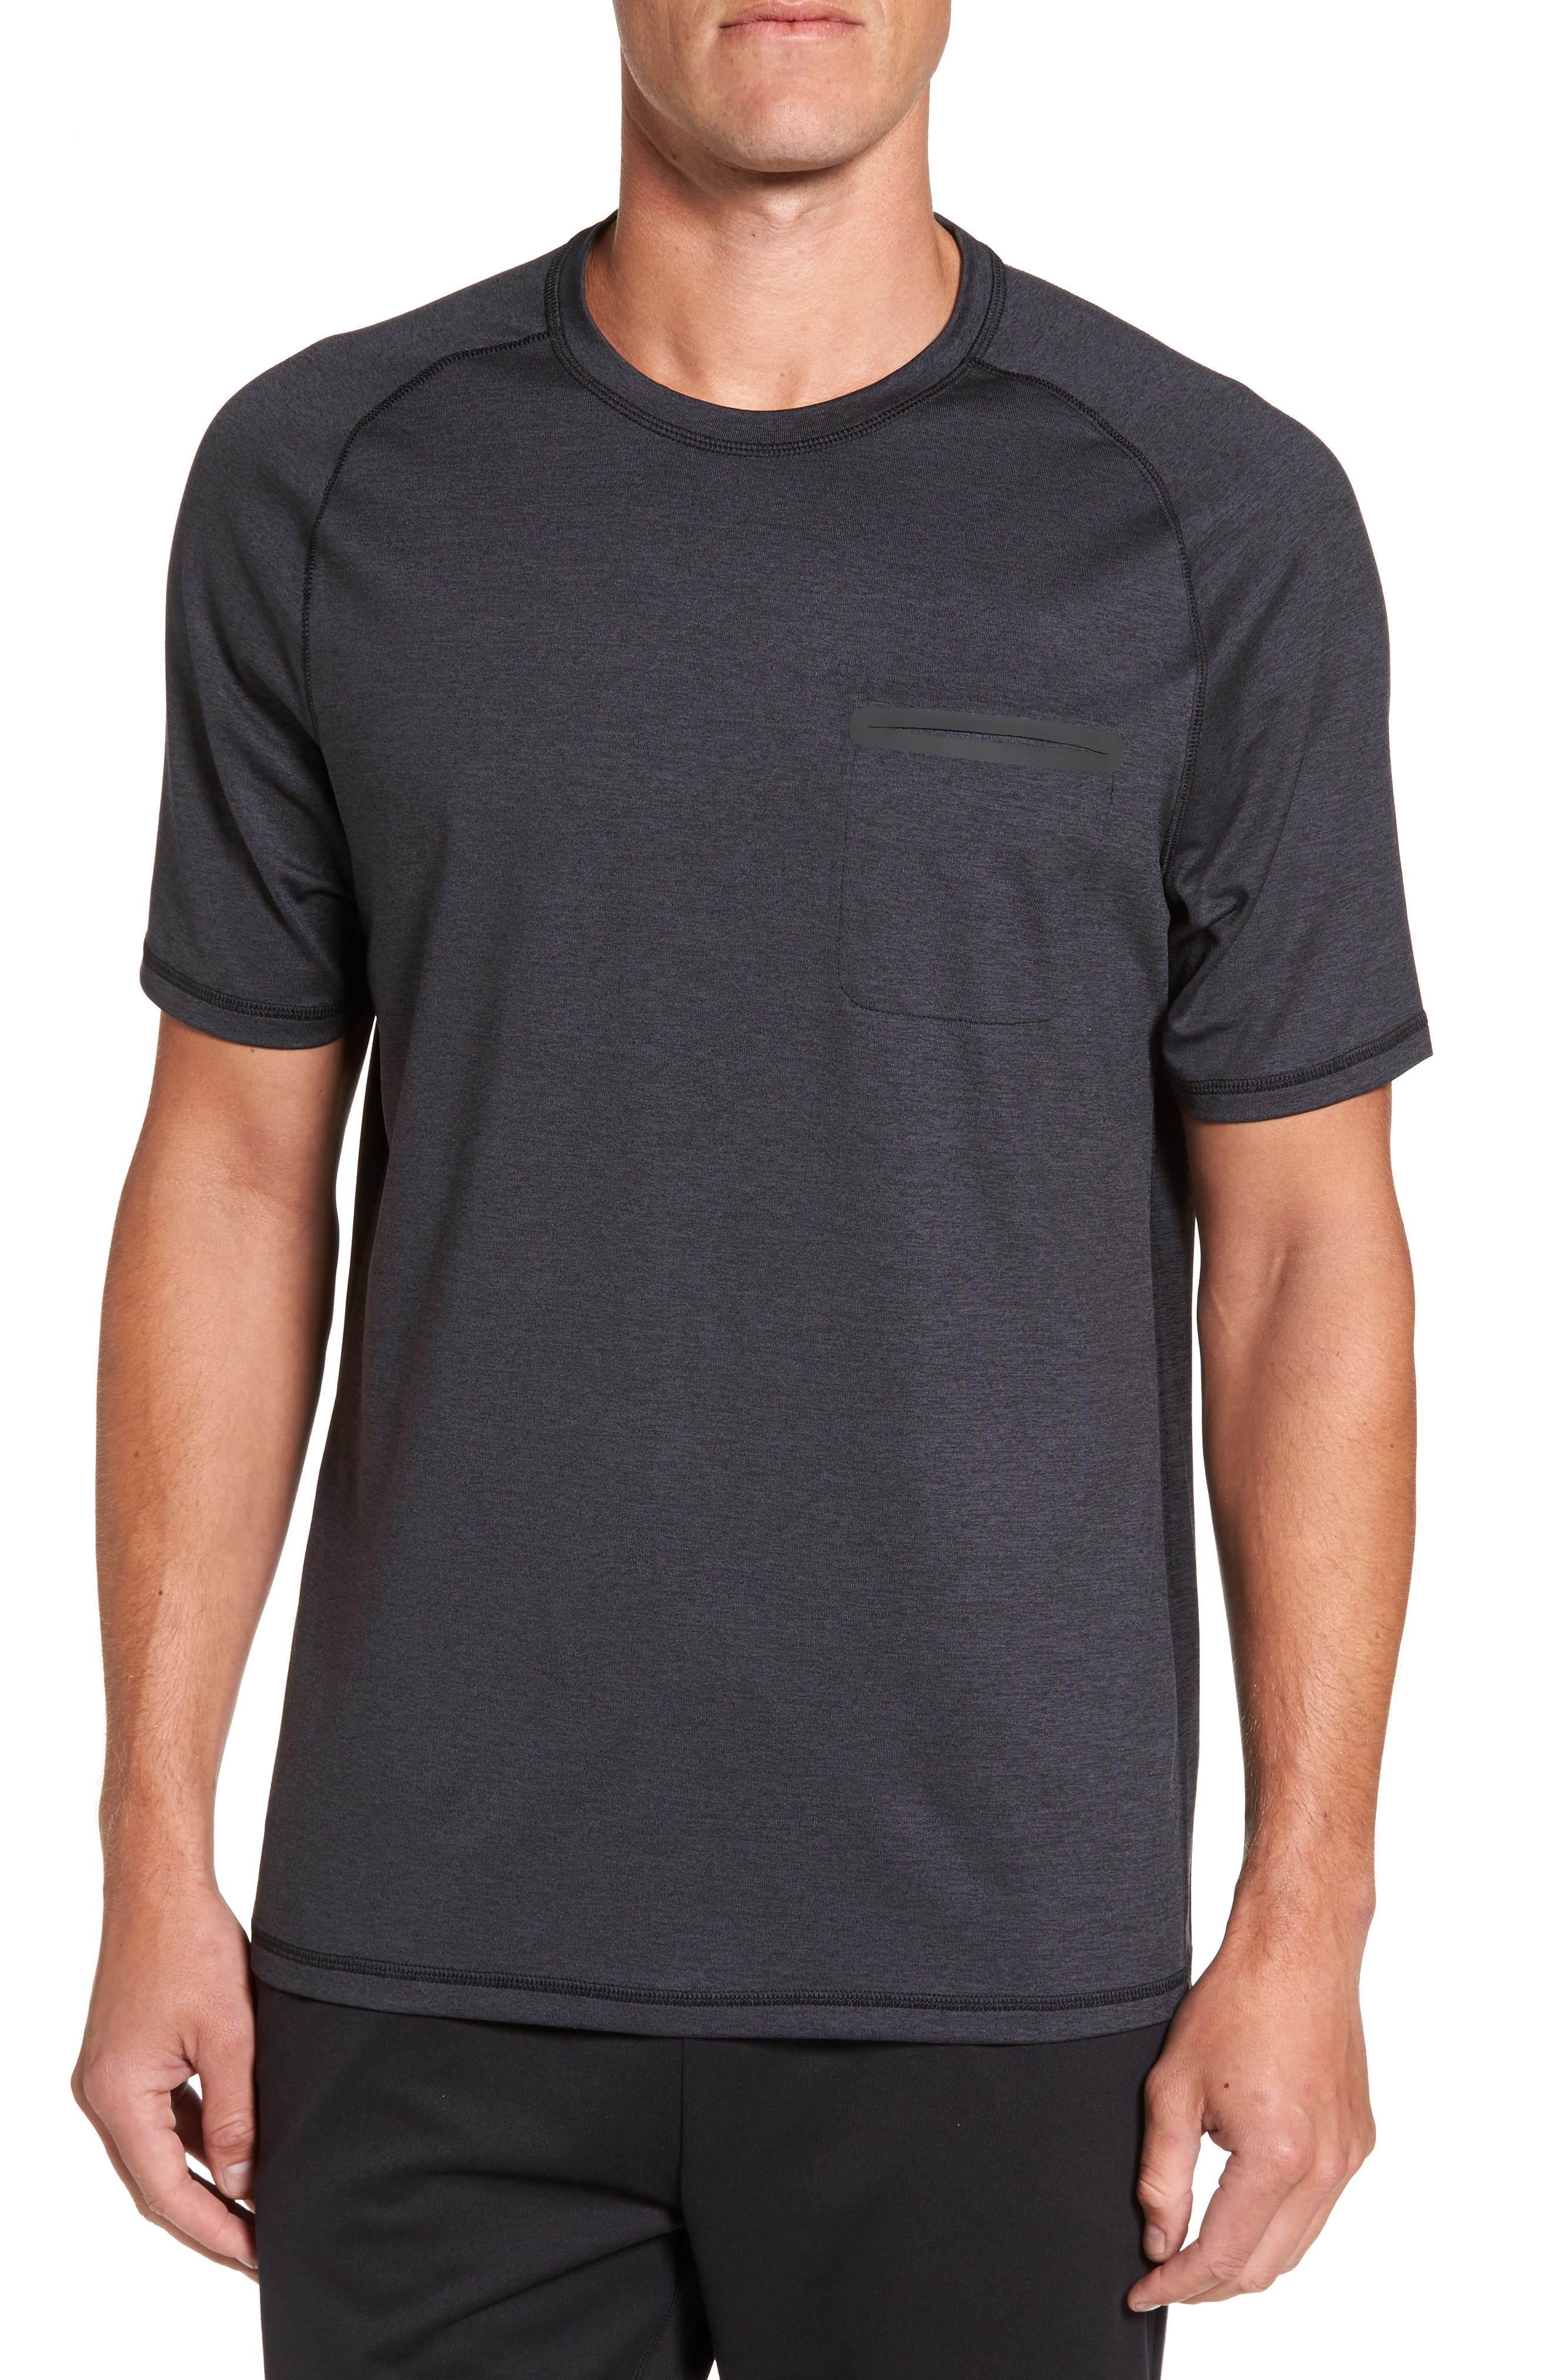 Zella Celsian Moisture Wicking Pocket T-Shirt